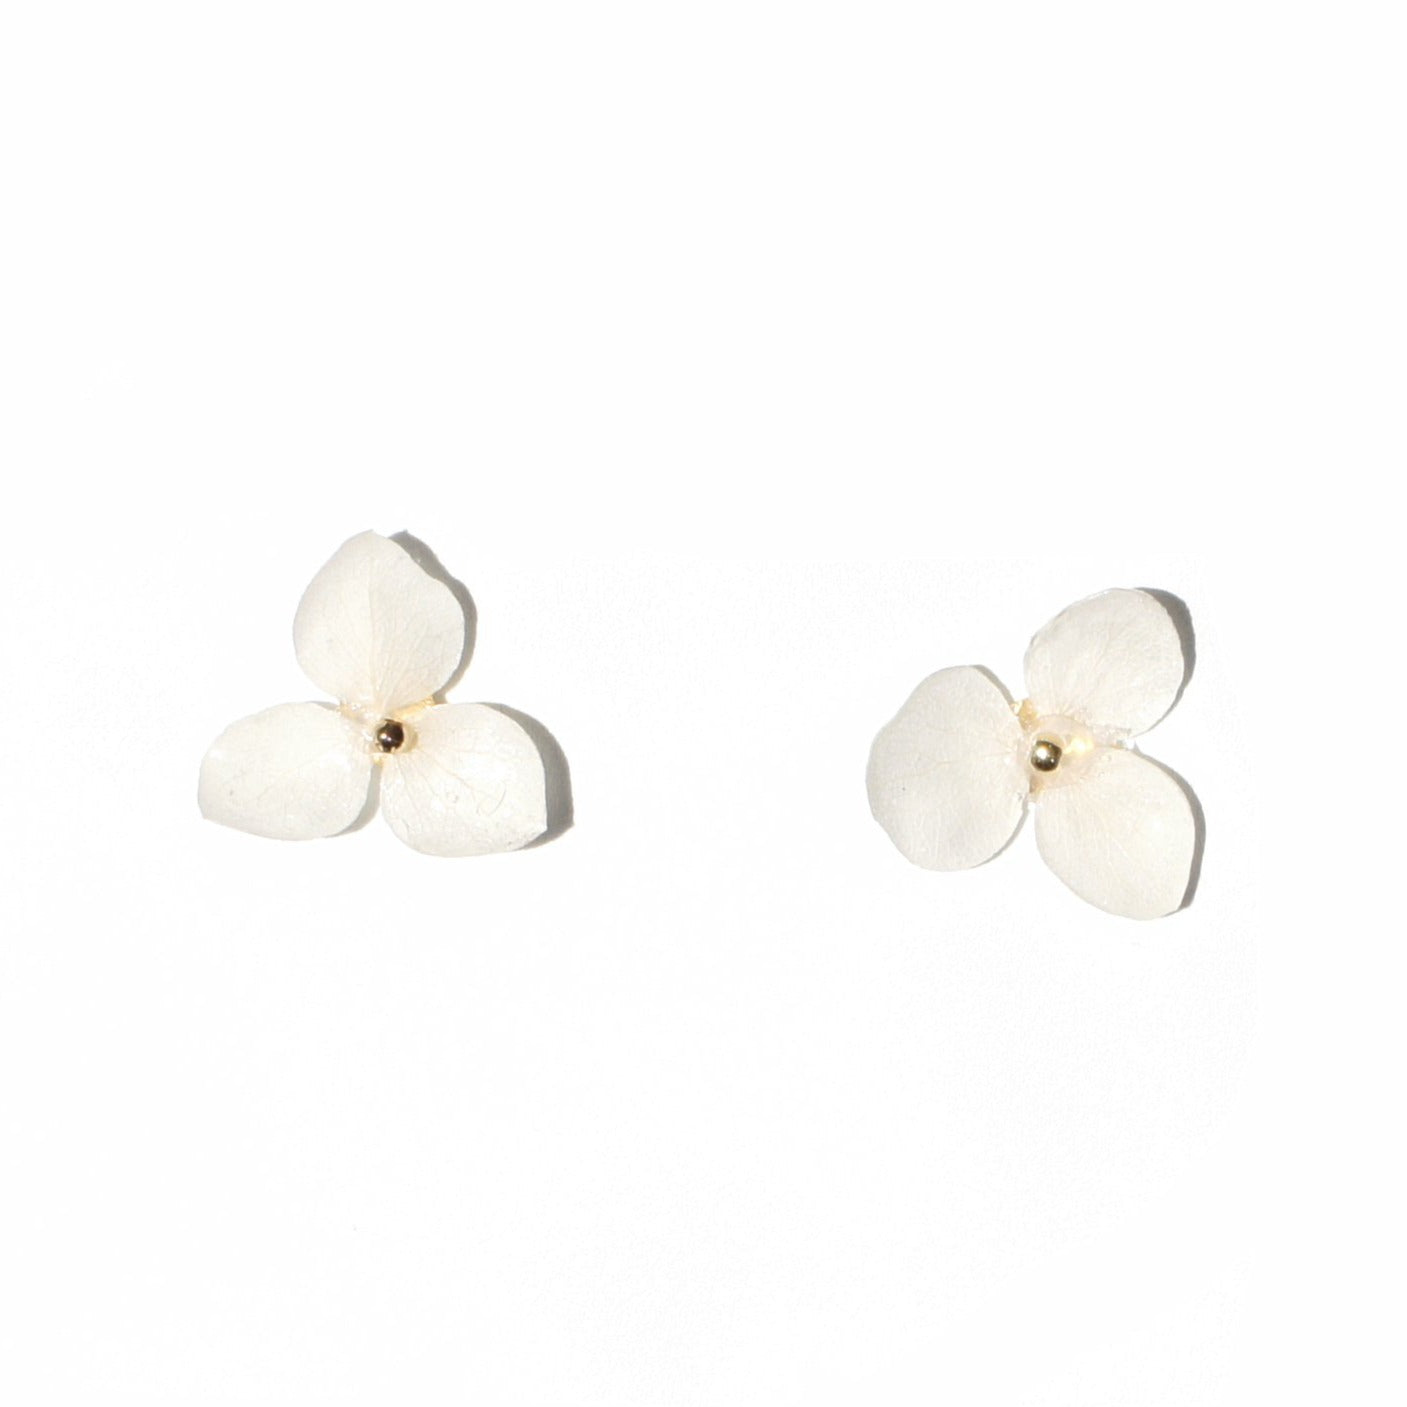 *REAL FLOWER* Libelle Hydrangea Flower Stud Earrings w/Gold Vermeil Posts